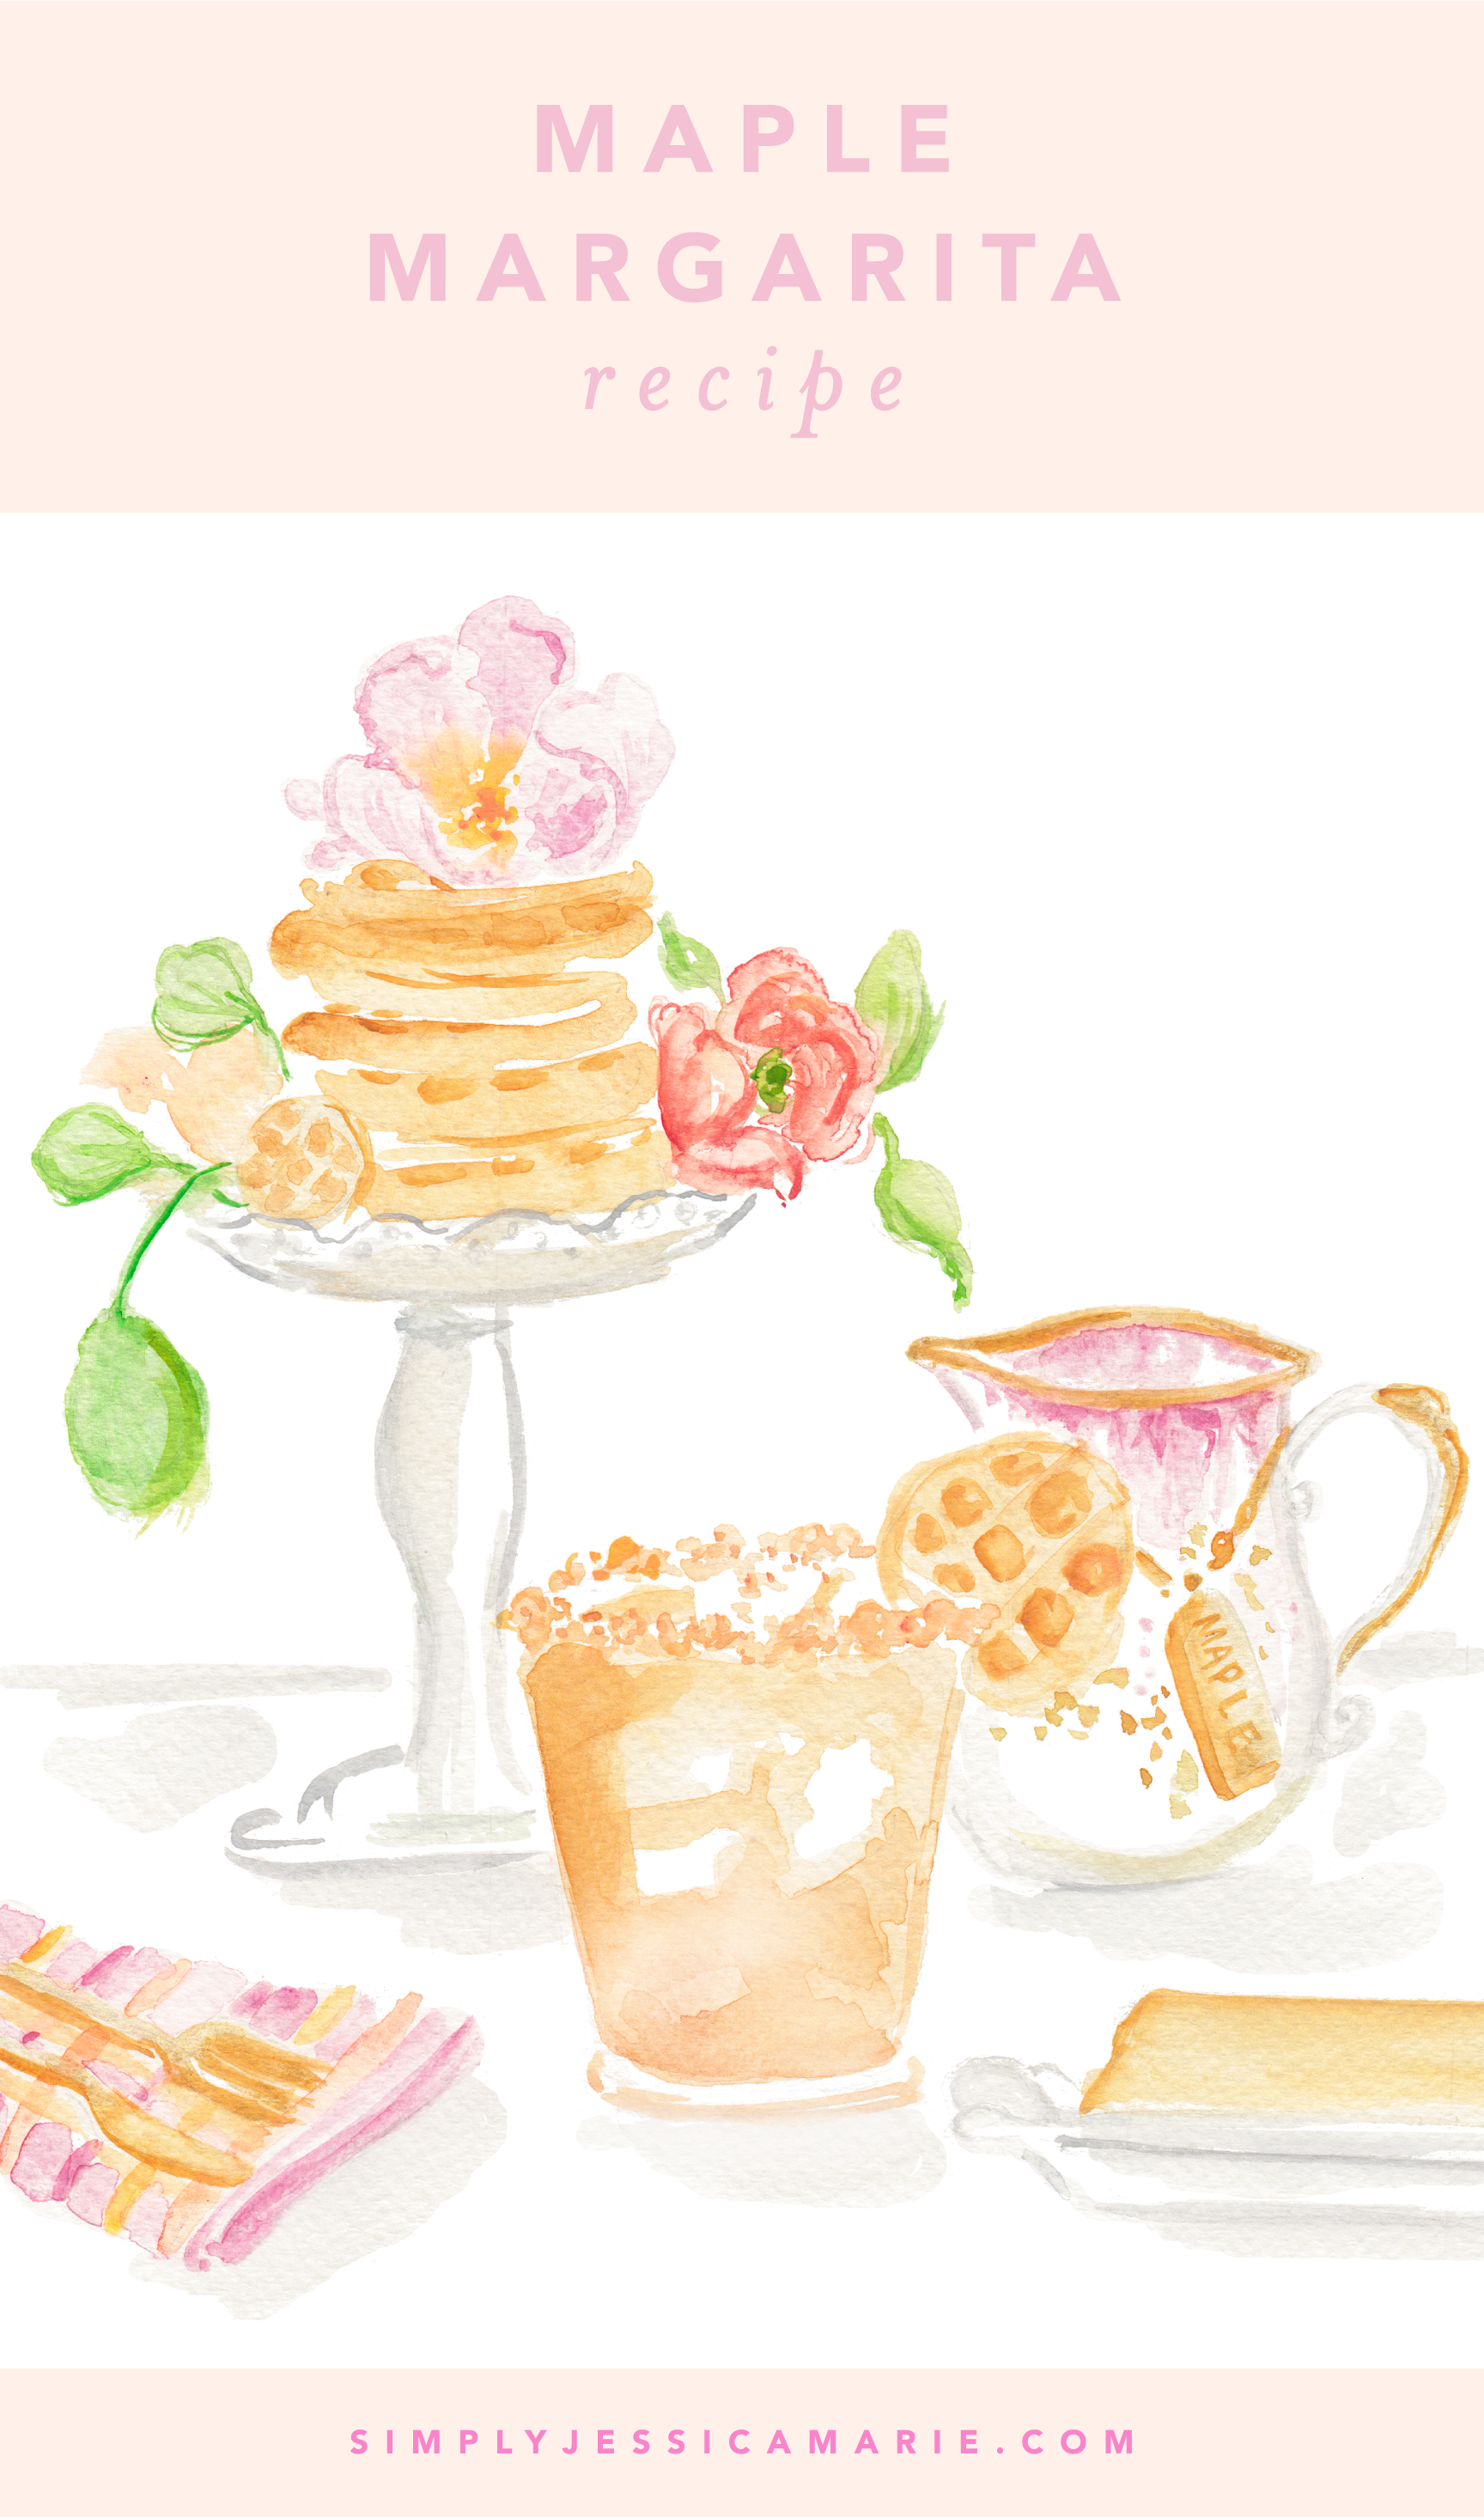 Maple Margarita Recipe | Watercolor Cocktail Painting by Simply Jessica Marie | SJM 2018 Cocktail Calendar